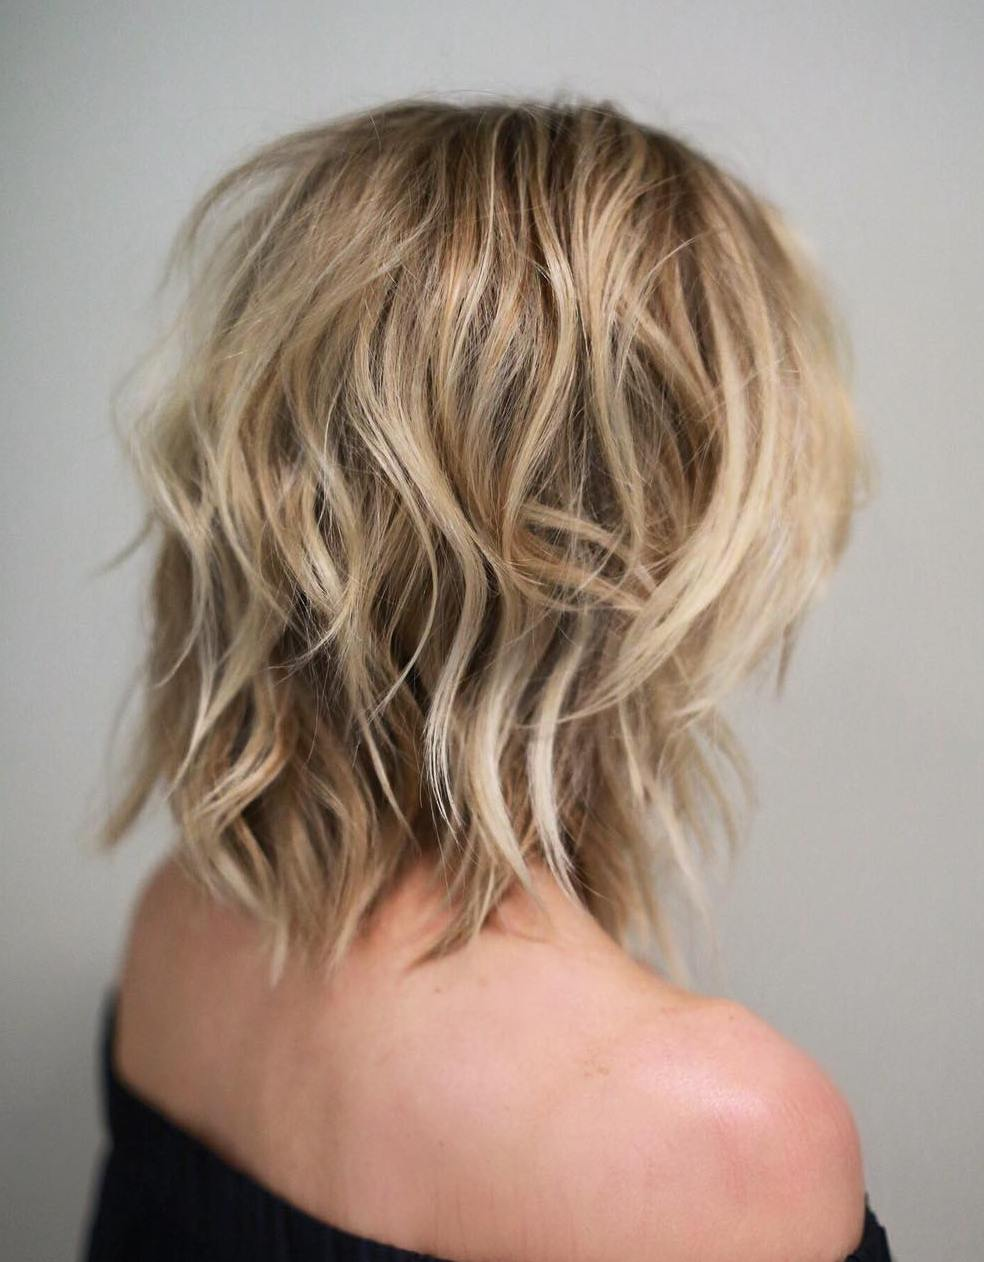 Strange Shag Haircuts And Hairstyles In 2016 Therighthairstyles Short Hairstyles For Black Women Fulllsitofus